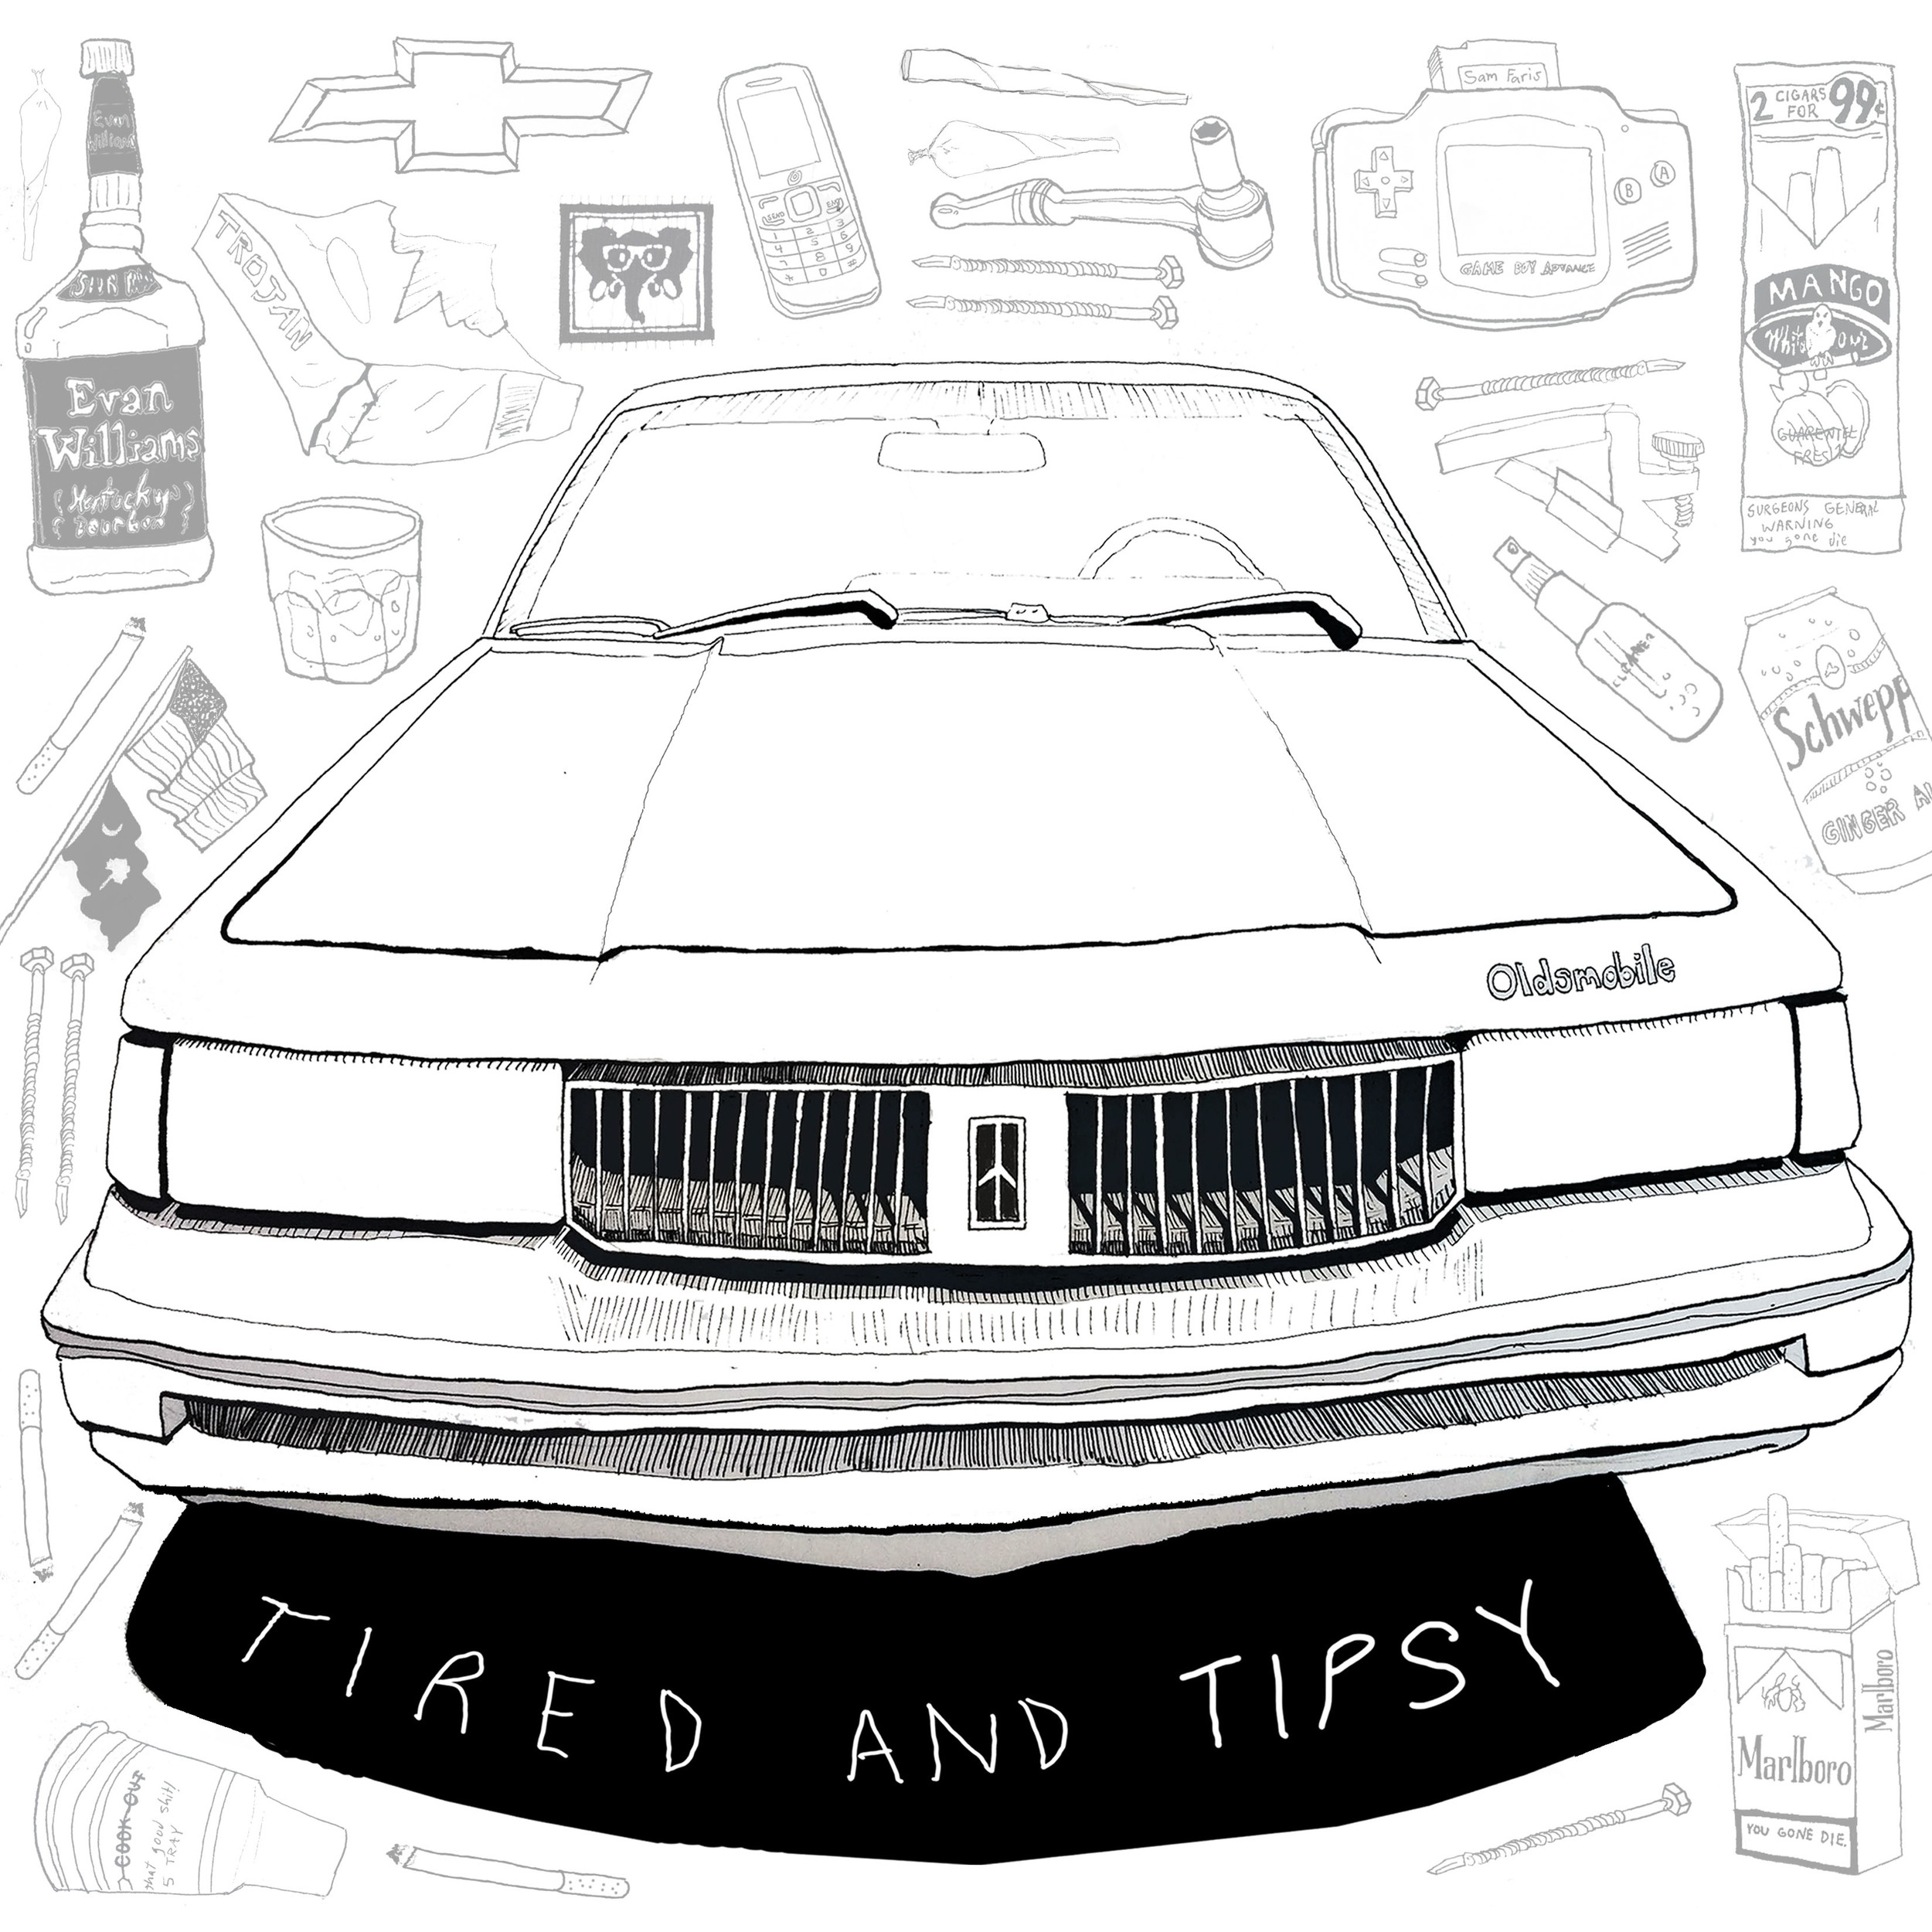 Tired and Tipsy Album Artwork